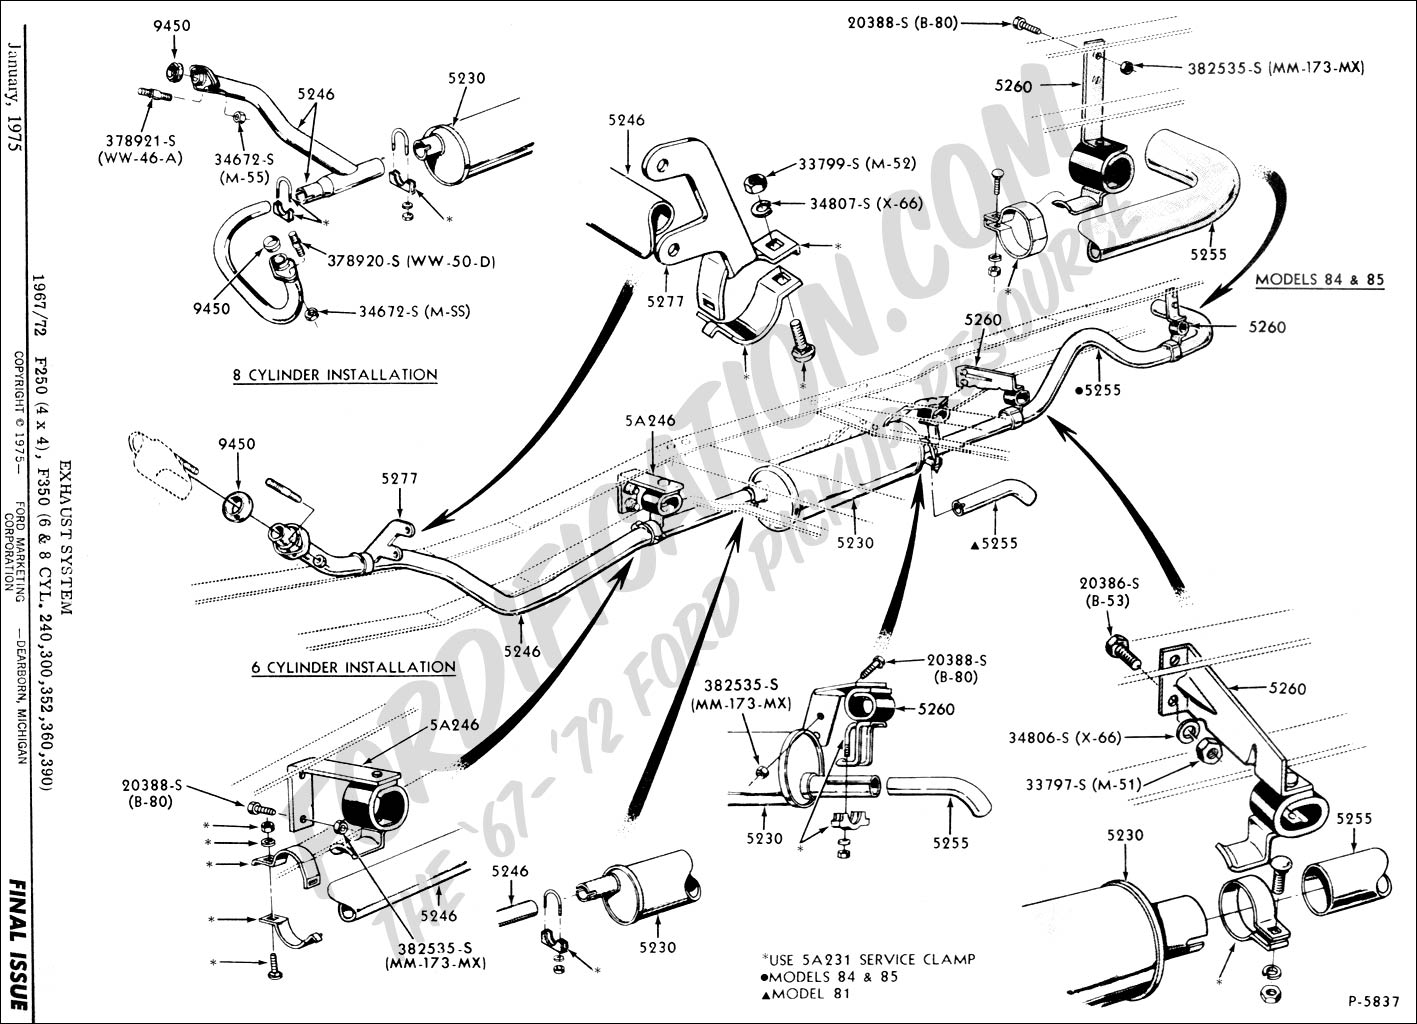 Wiring Diagram 10 Ford Windstar Exhaust System Diagram